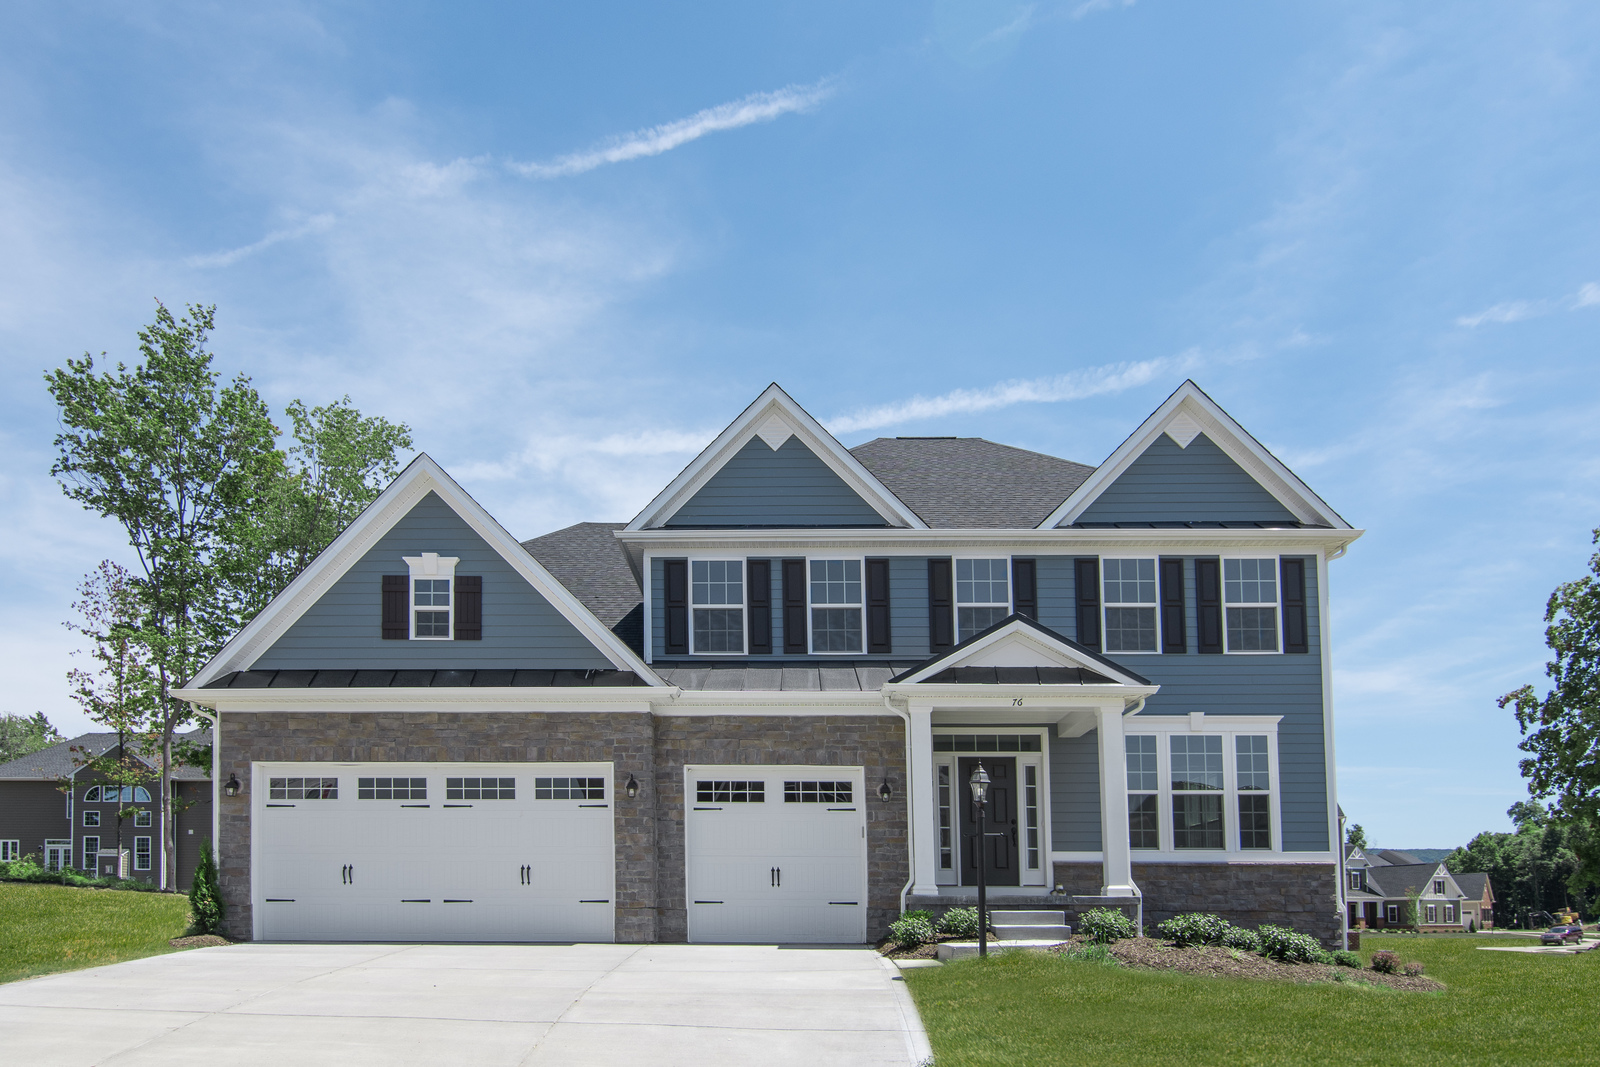 "Wooded homesites in Robinson Township with beautiful luxury homes. <a href=""#visit"">Schedule your visit today!</a>"